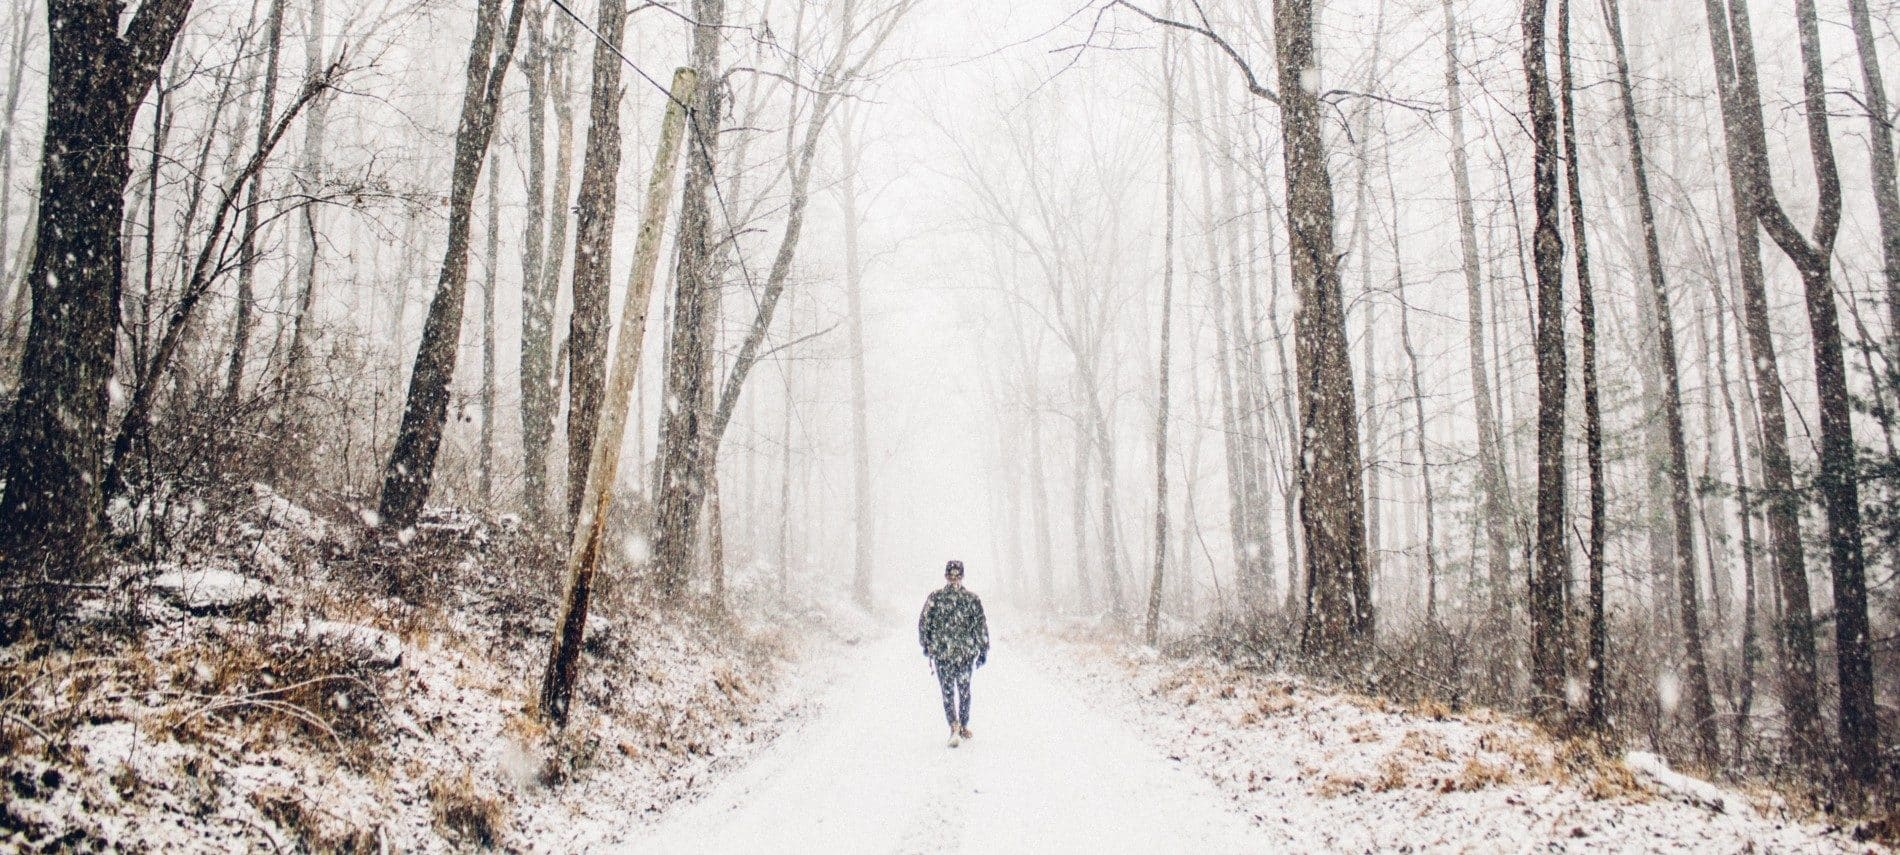 Single trail in the woods with freshly falling snow and one man walking alone